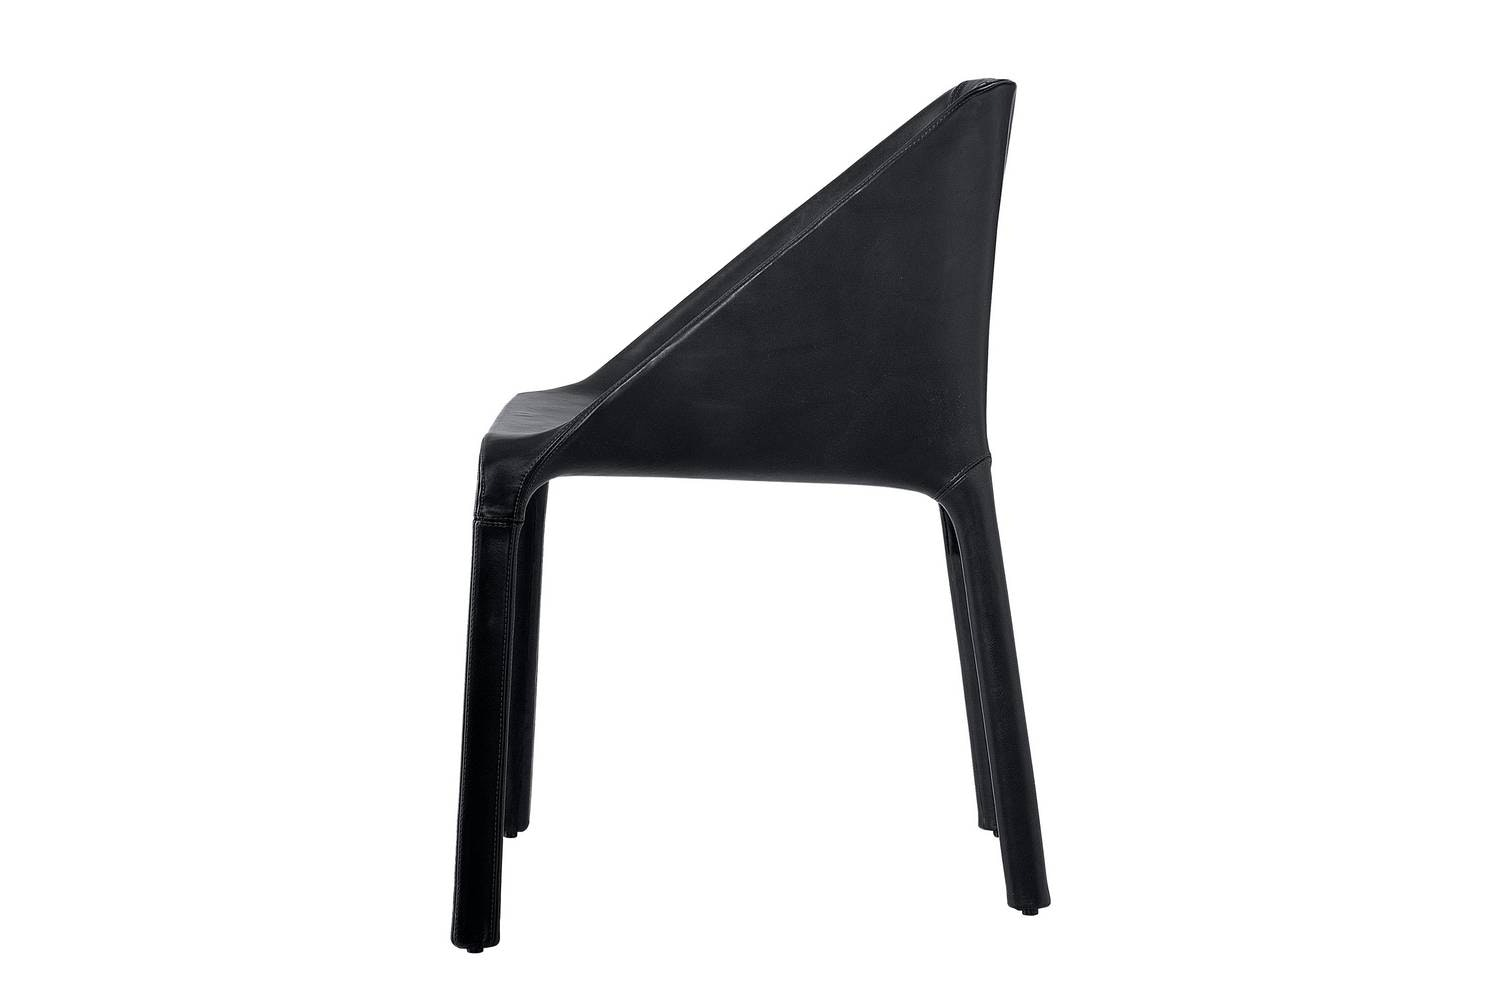 Manta Chair with Arms by Rodrigo Torres for Poliform